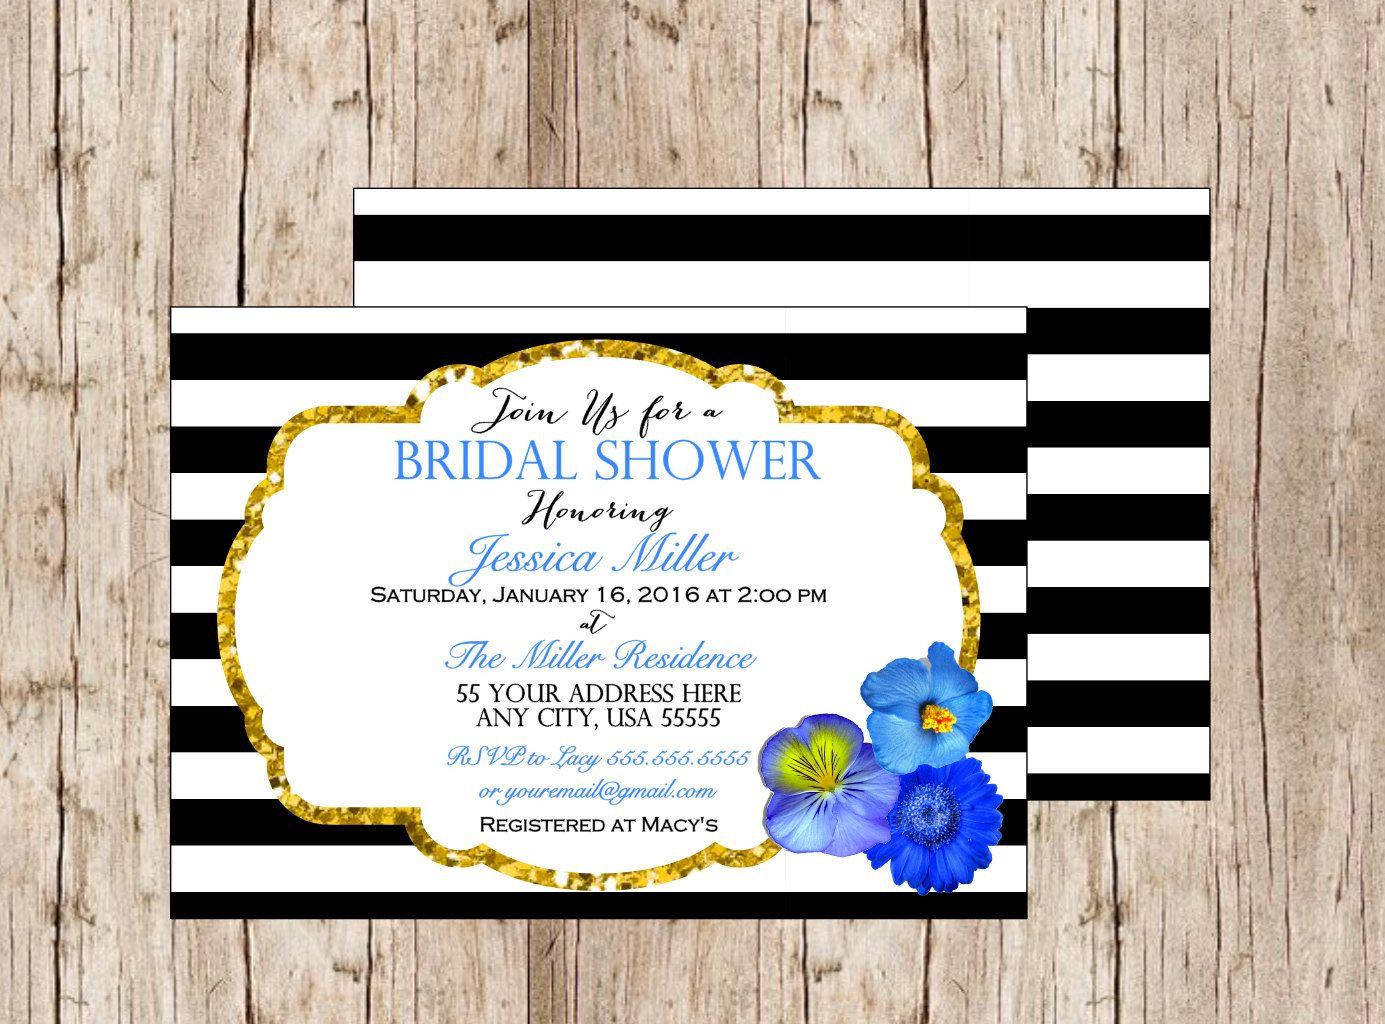 Black And Gold Invitation Black And Gold Wedding Invitation Black